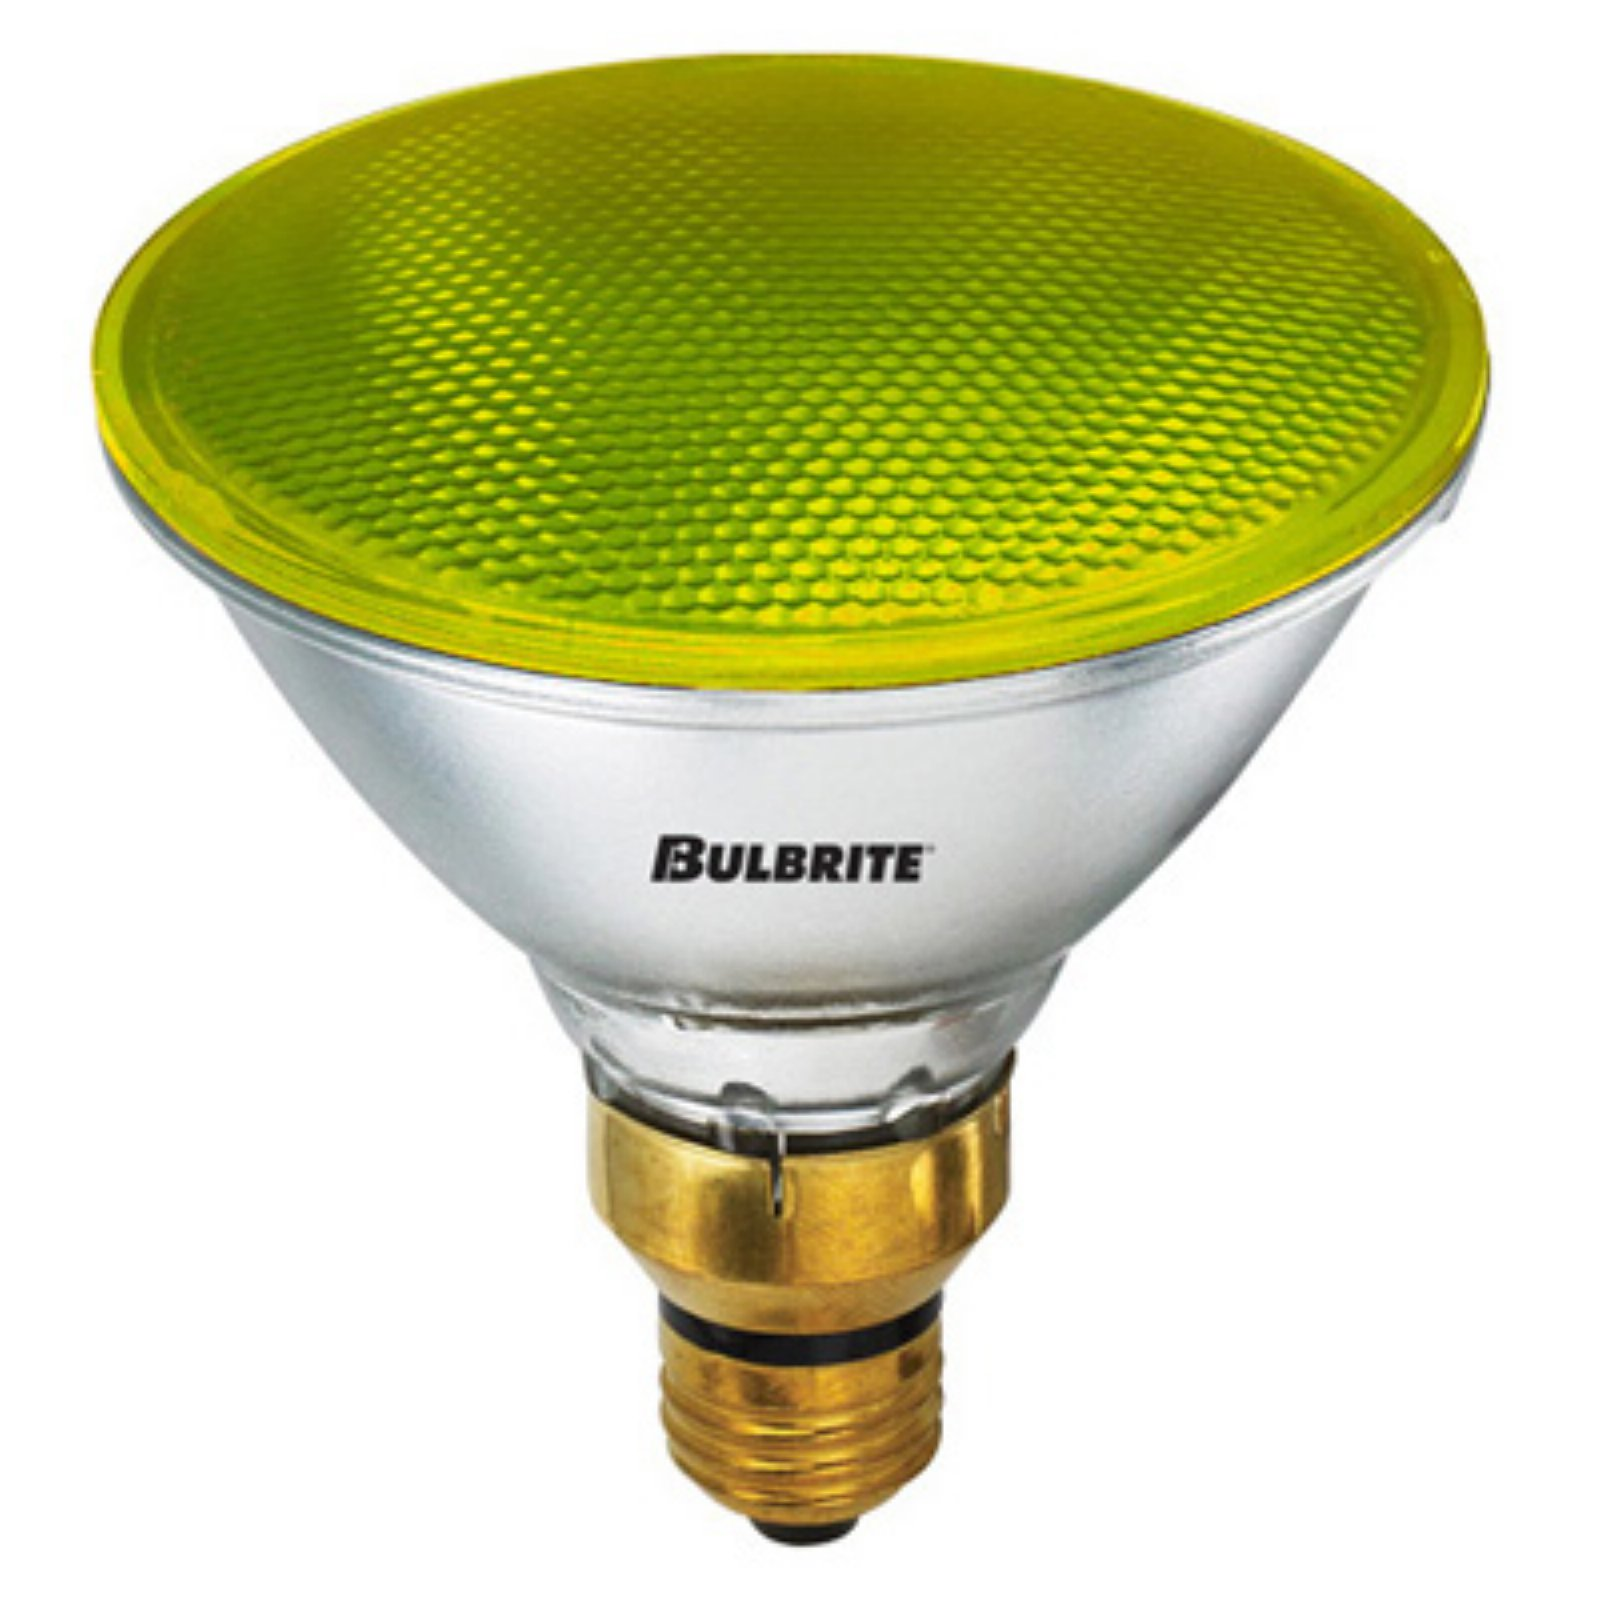 Bulbrite 90W Dimmable Halogen PAR Light Bulb - 6 pk.